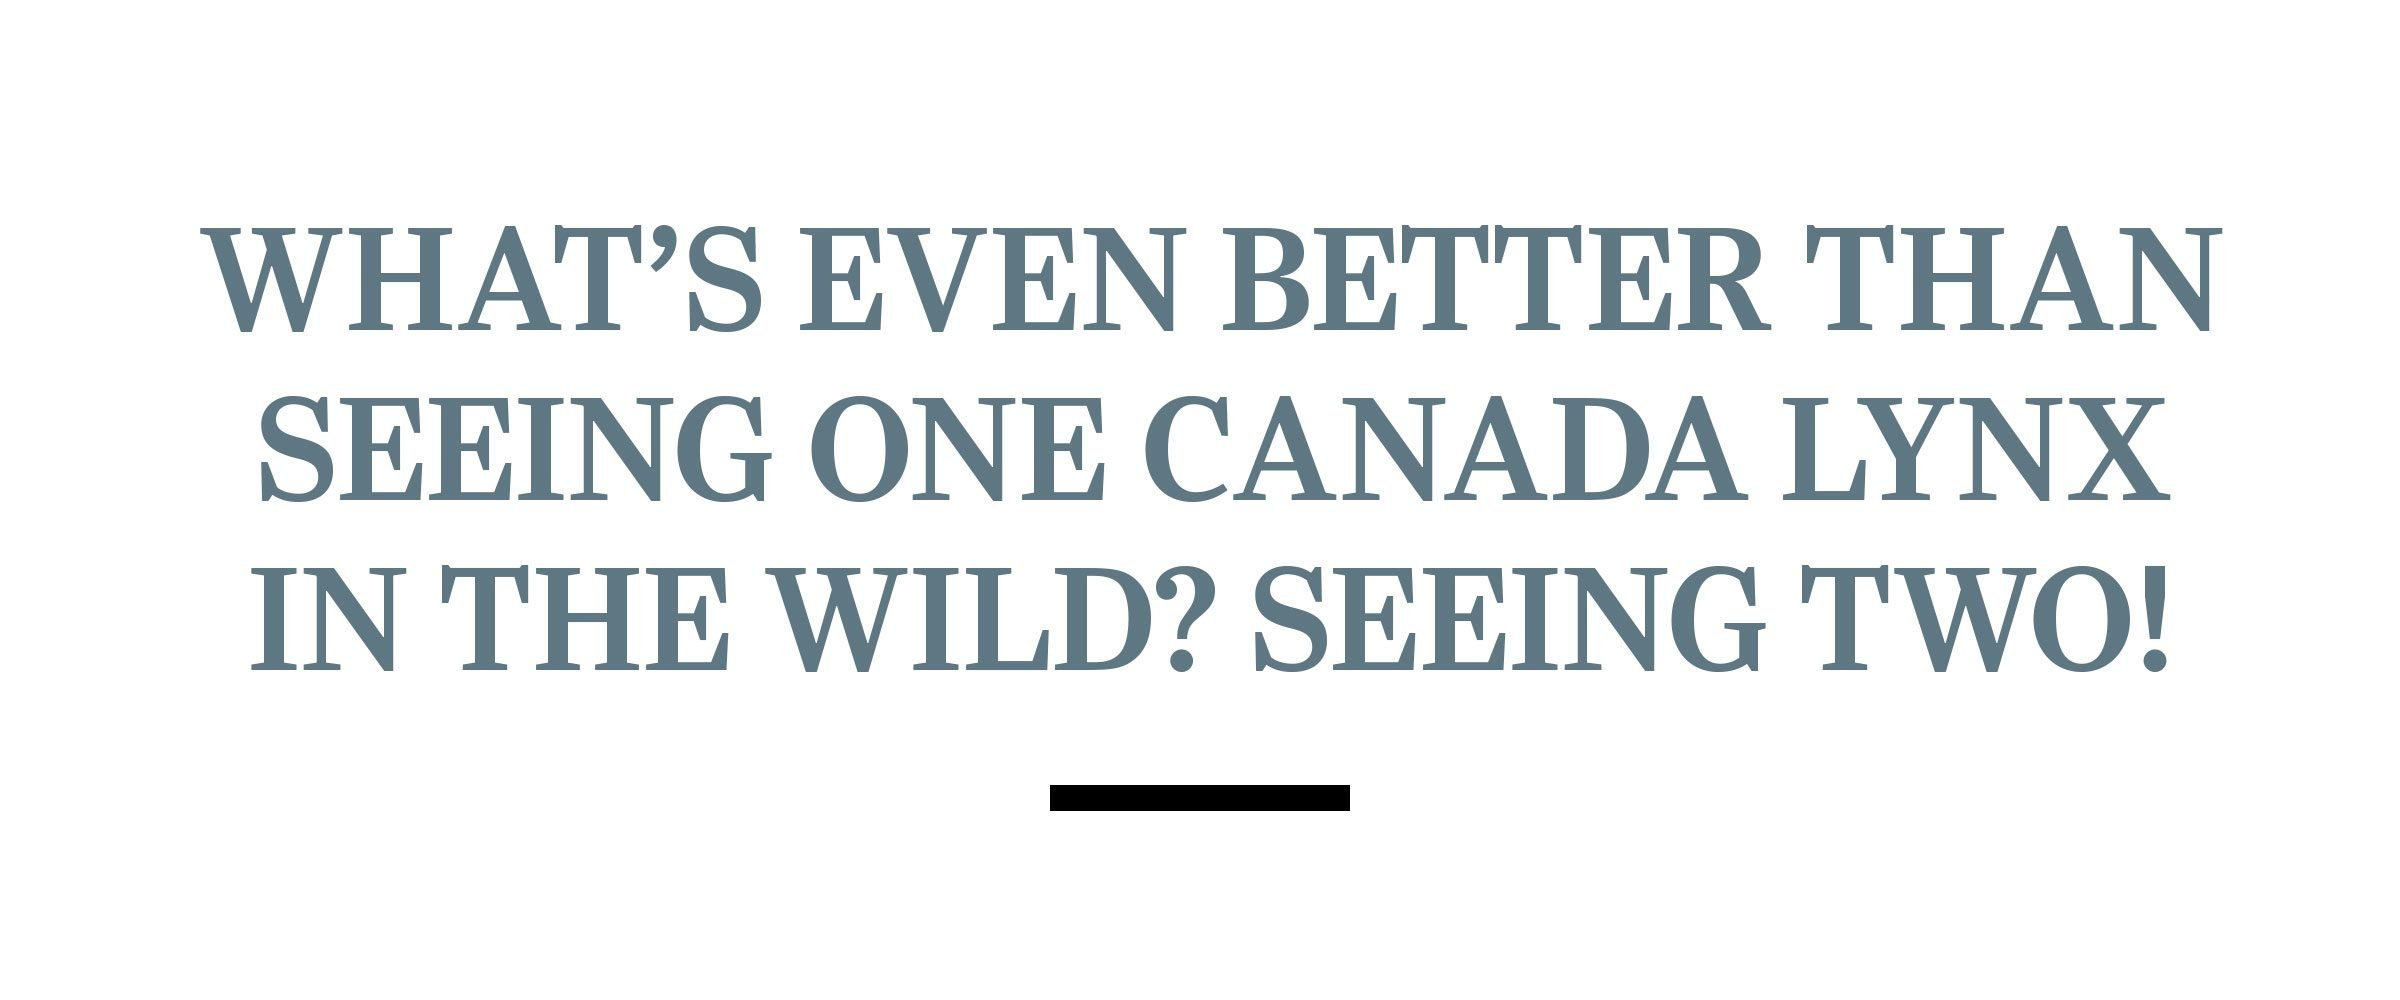 text: What's even better than seeing one Canada lynx in the wild? Seeing two!